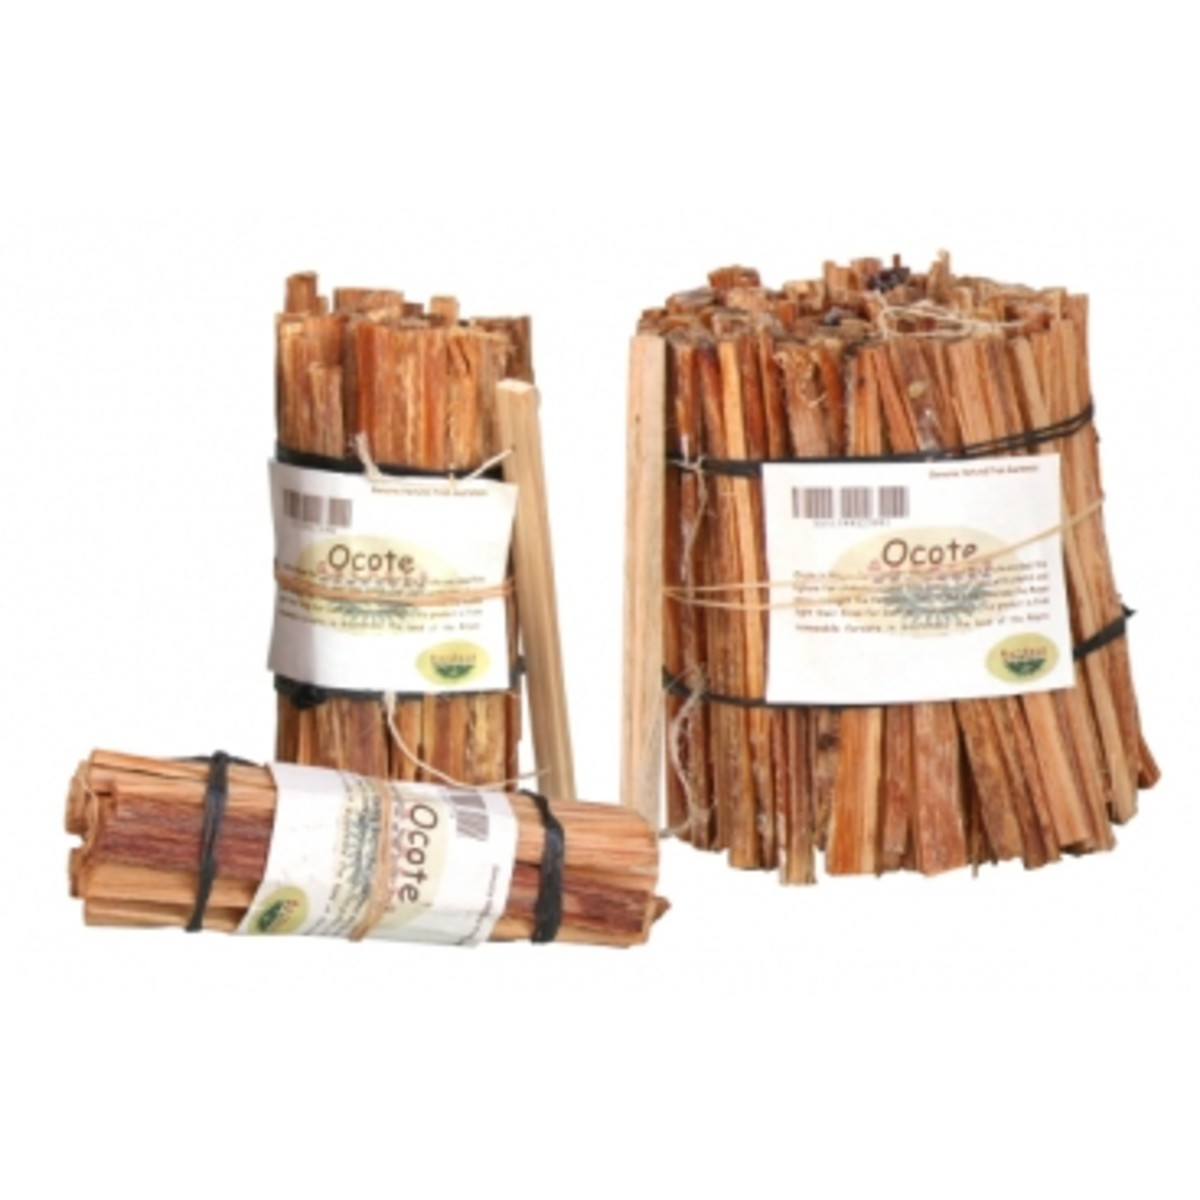 Natural Ocote firelighter from the slopes of the mountains in Central America